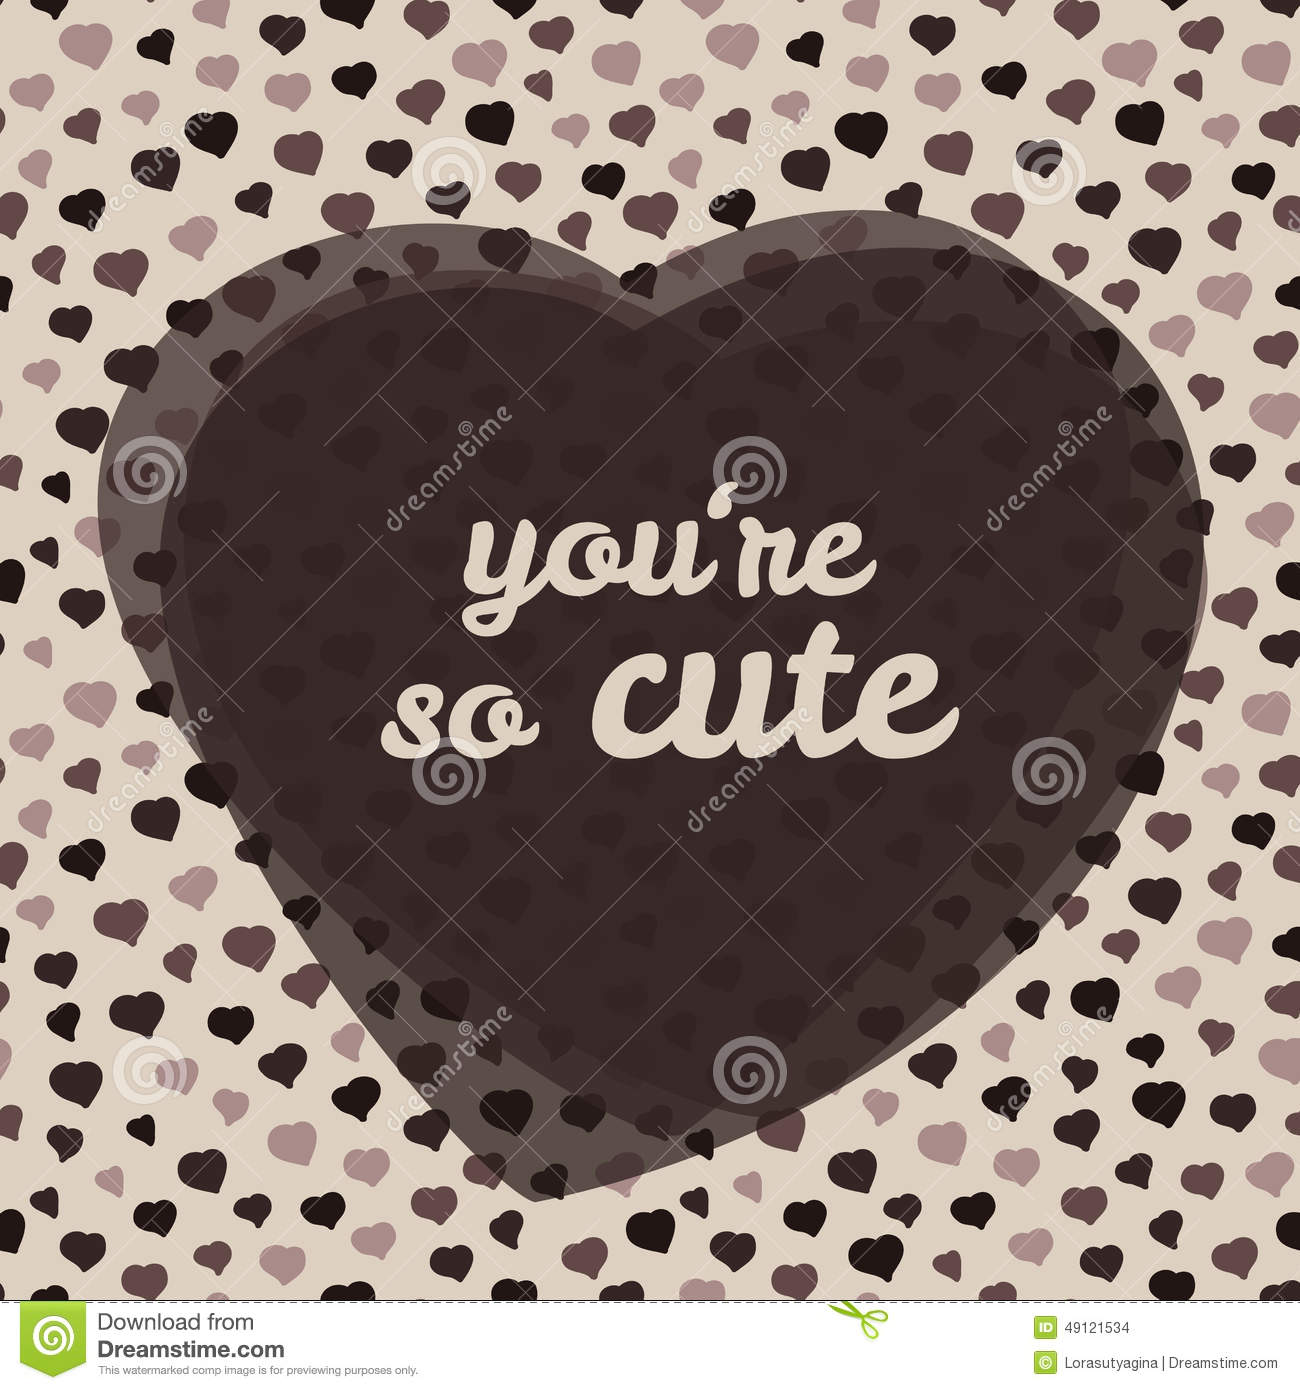 Youre So Cute Typography Valentines Day Love Card